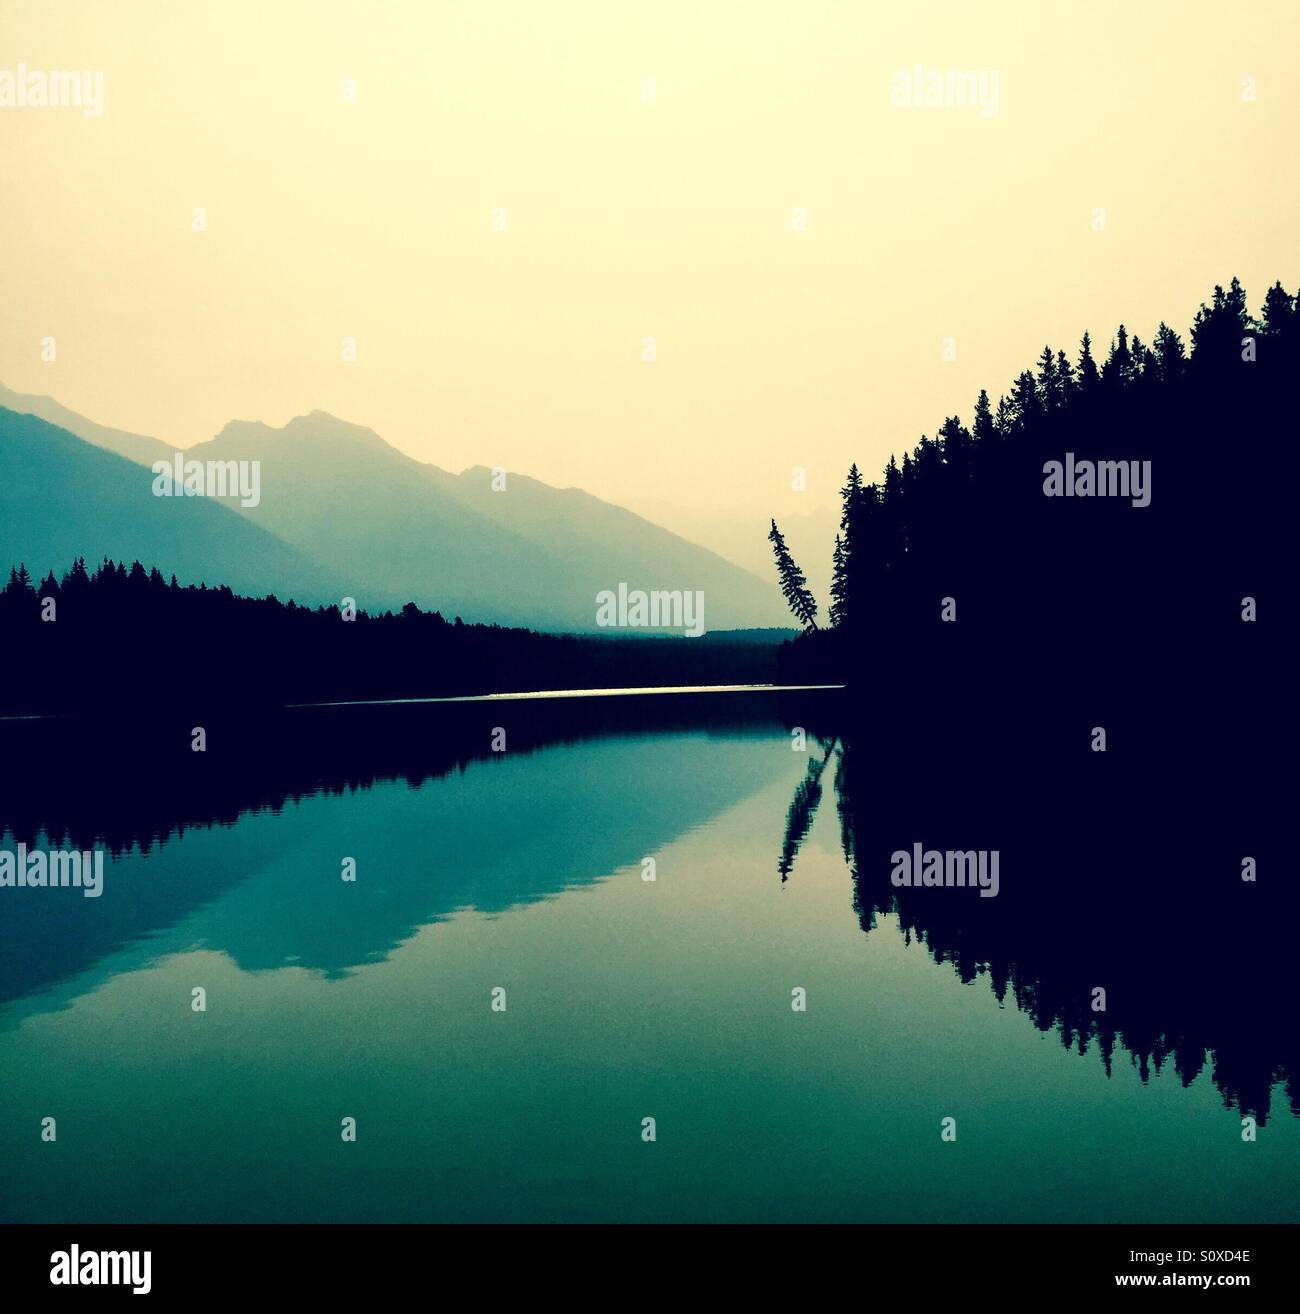 Reflections on a lake - Stock Image